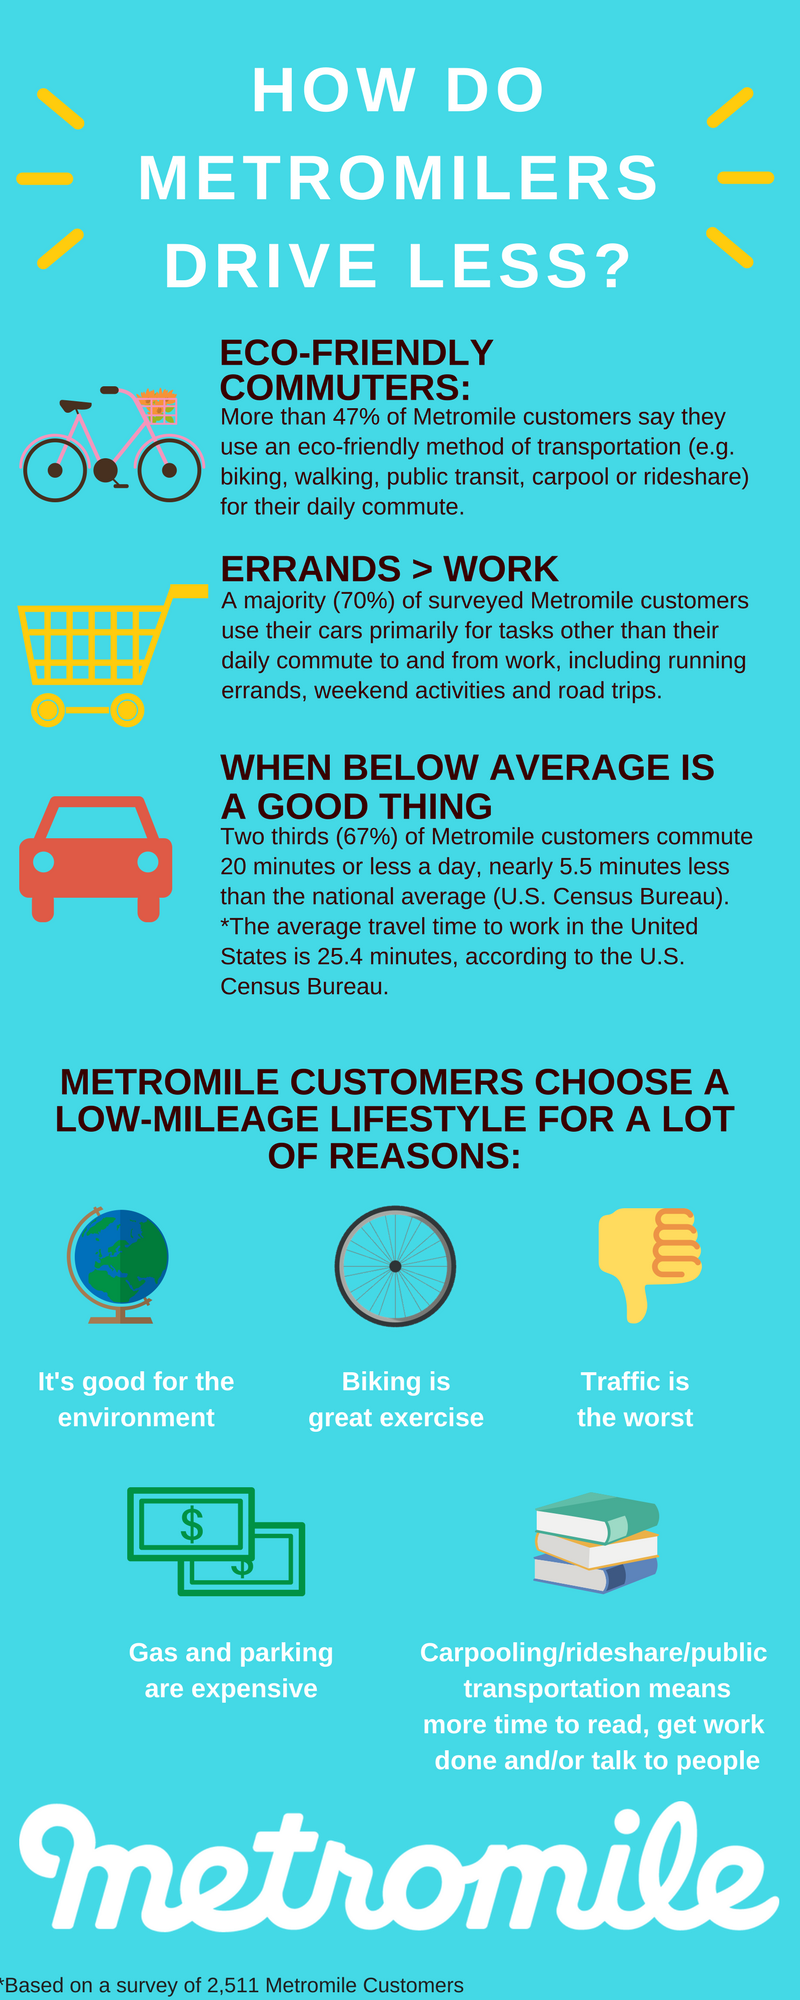 How do Metromilers Drive Less?